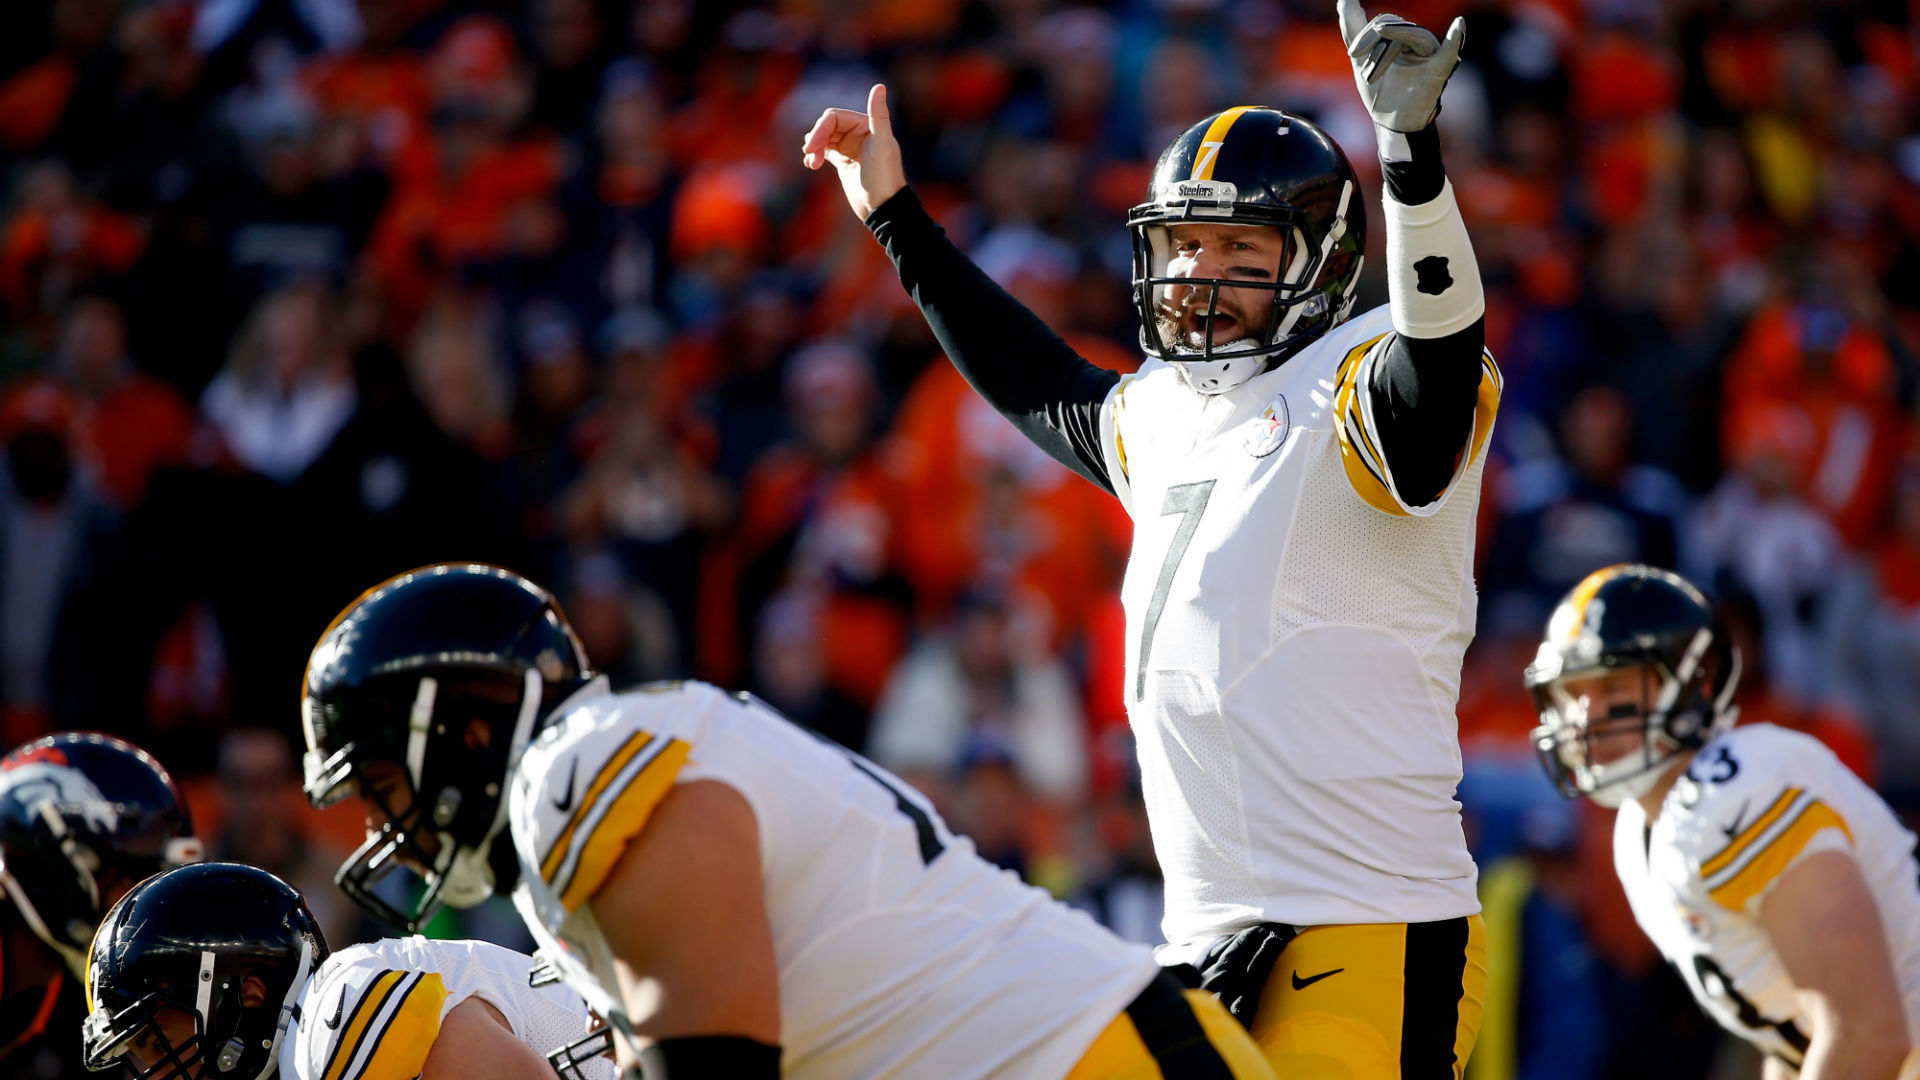 ben-roethlisberger-011716-usnews-getty-ftr